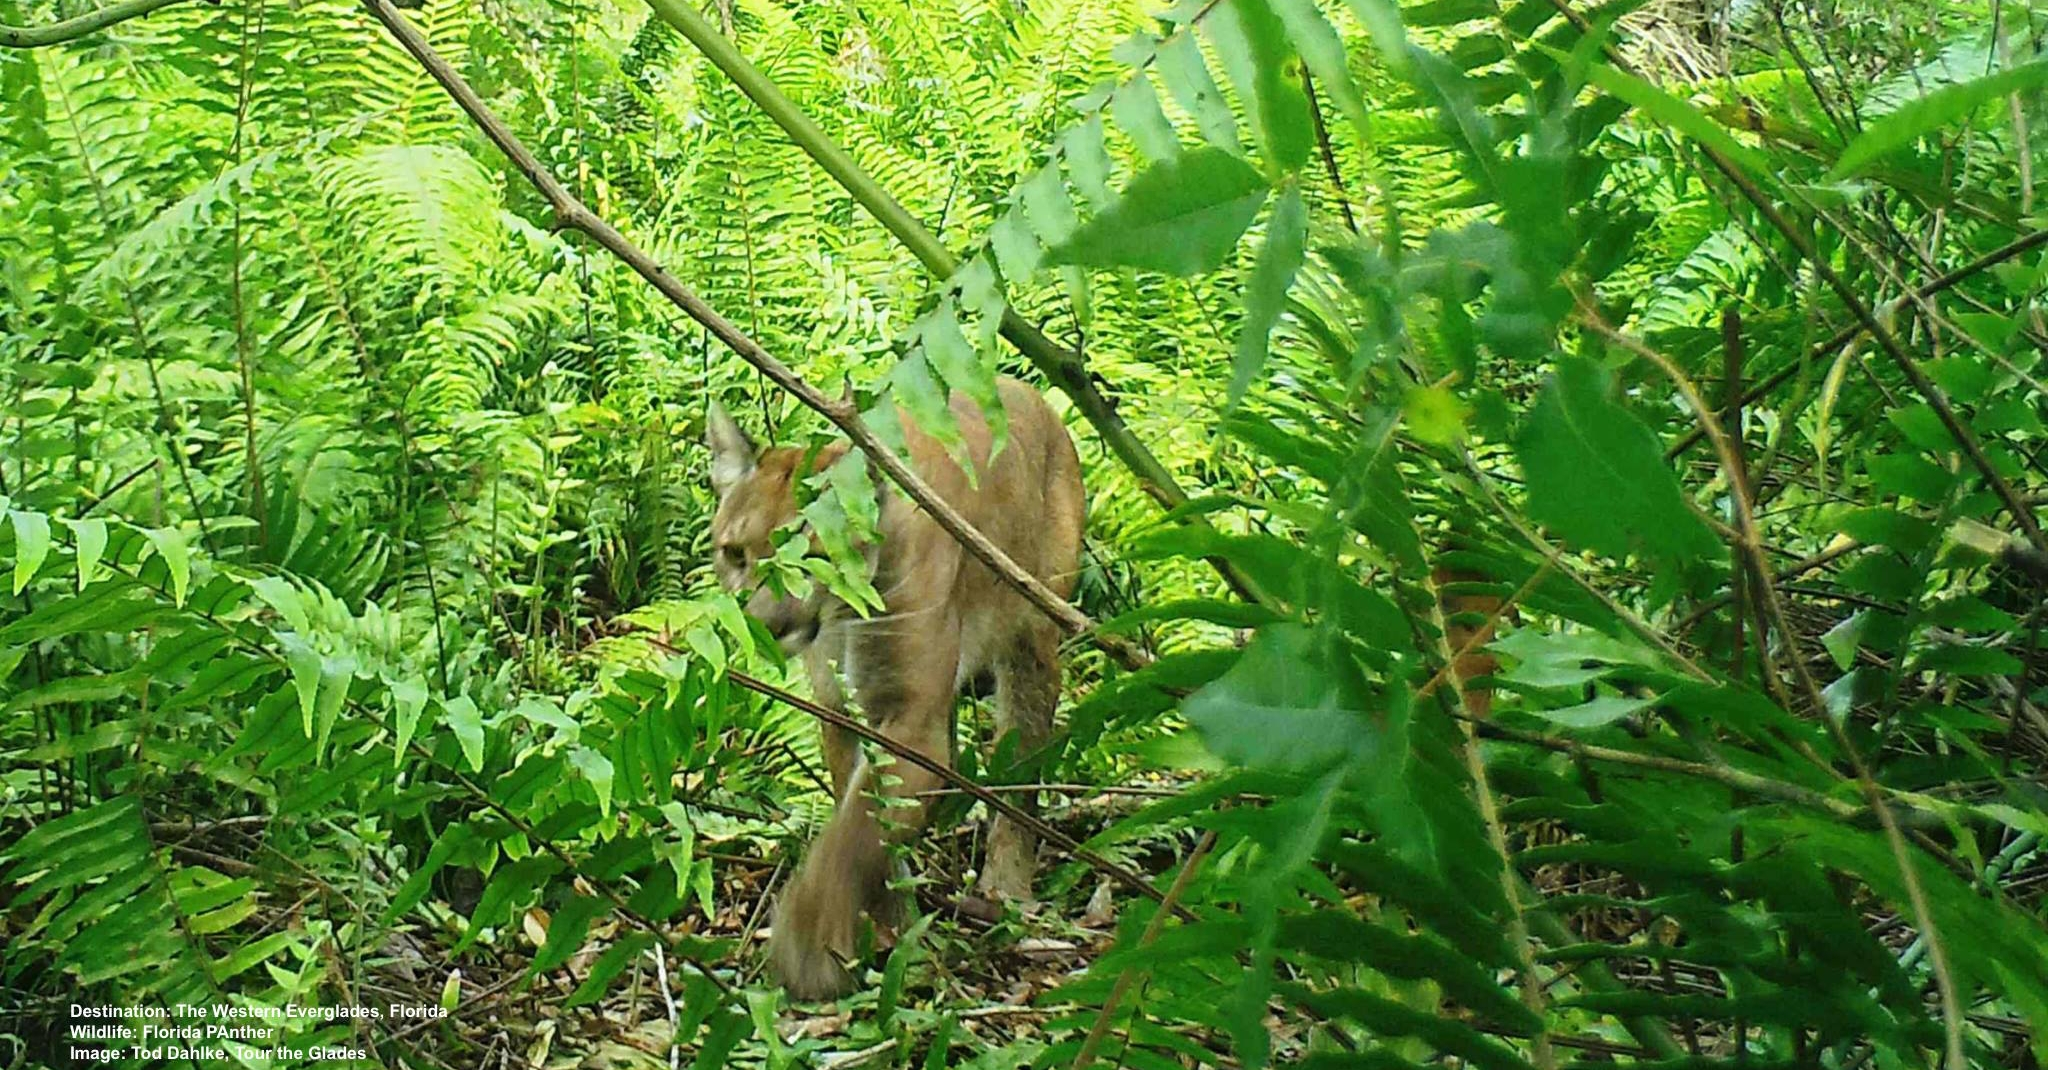 HUMANS CAN BOARD UP THEIR HOMES AND EVACUATE, BUT WHAT HAPPENS TO WILDLIFE? THE ONLY HABITAT LEFT FOR THE FLORIDA PANTHER AND OTHER ENDANGERED AND THREATENED SPECIES WERE RIGHT IN IRMA'S PATH. IMAGE COURTESY OF TOD DAHLKE, TOUR THE GLADES.